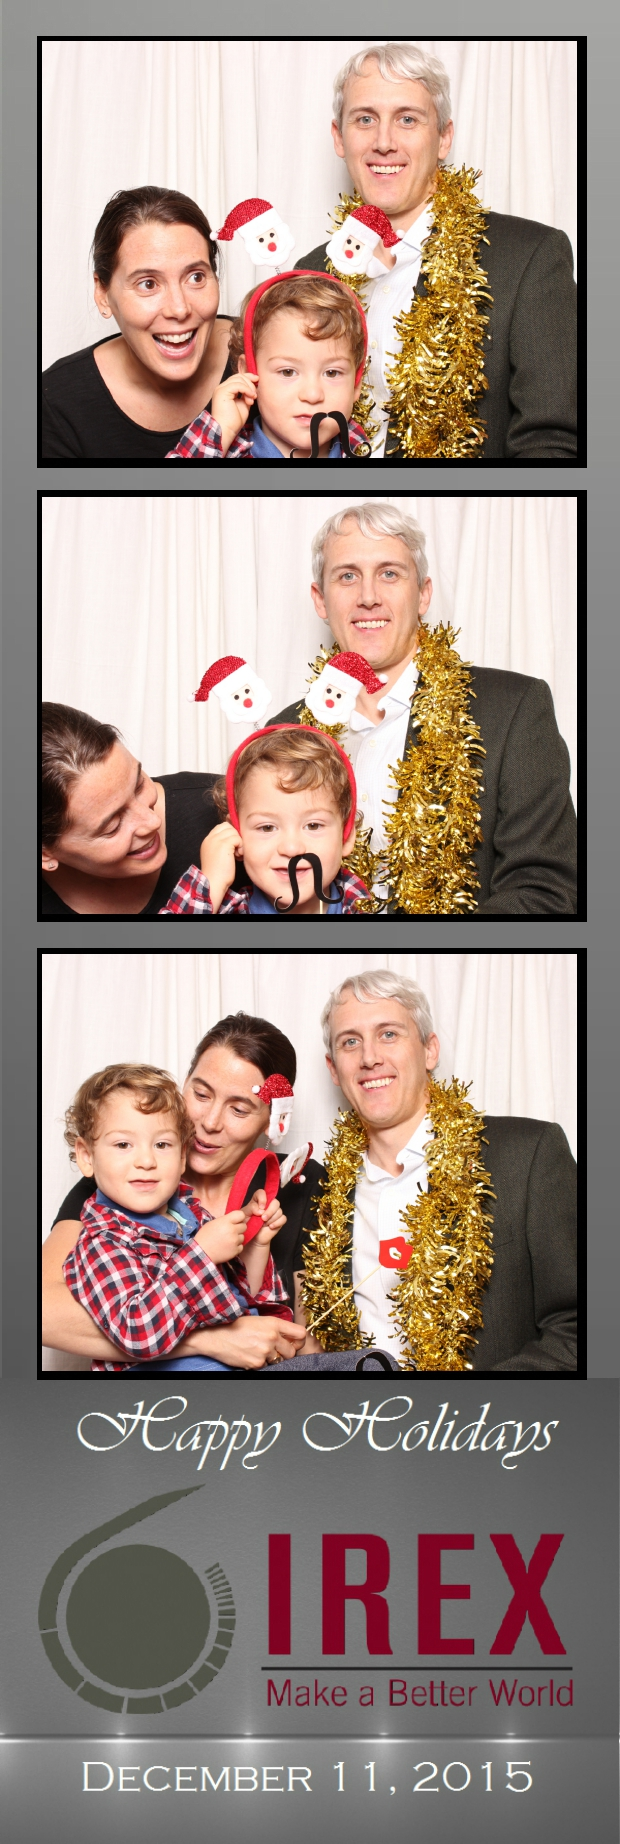 Guest House Events Photo Booth Strips IREX (35).jpg